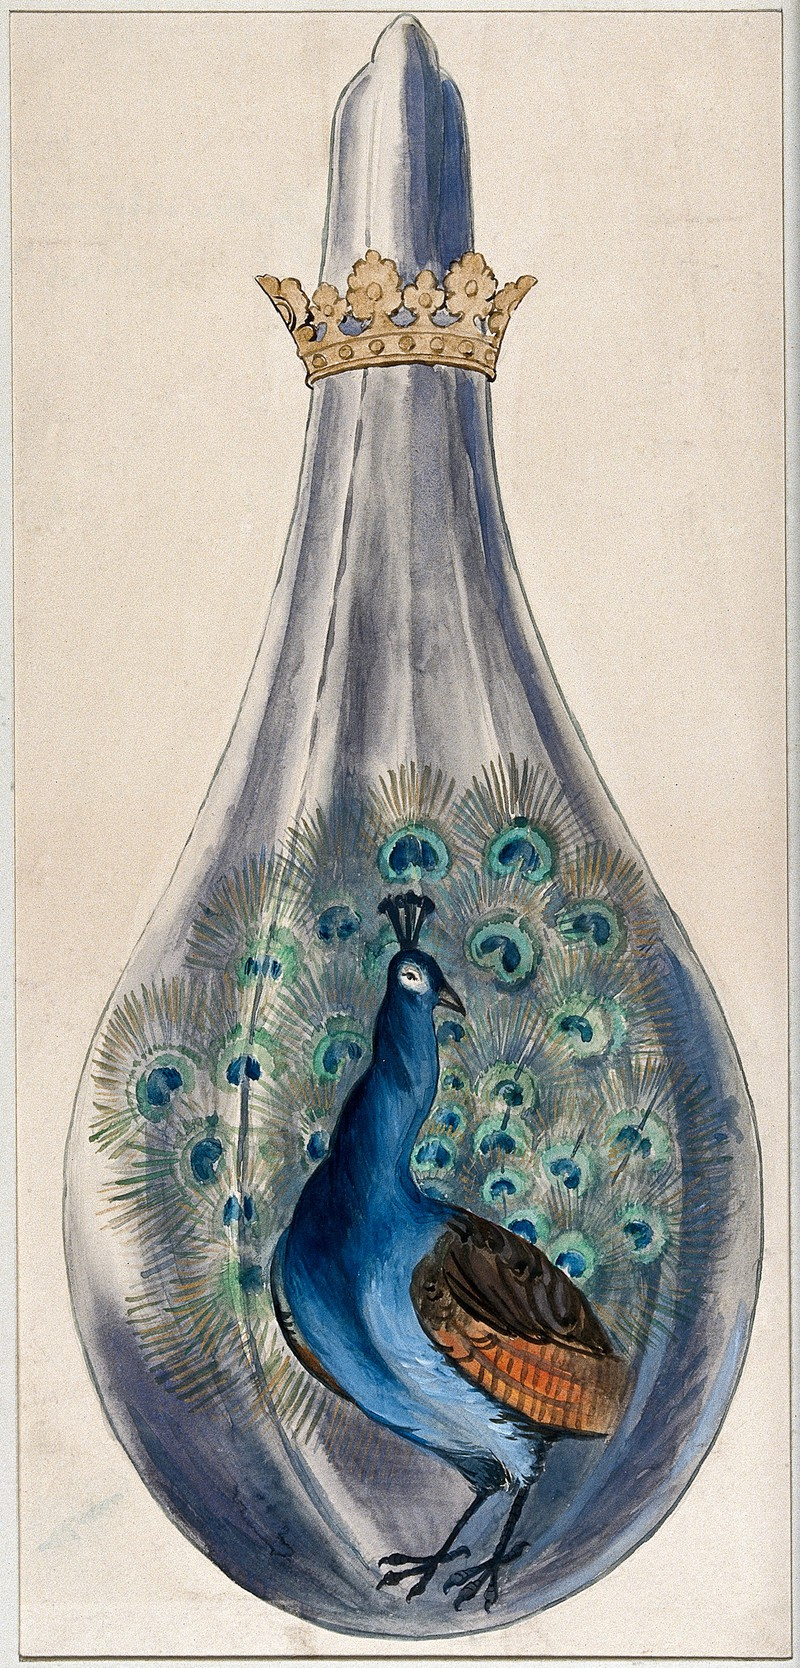 A peacock in a crowned alchemical flask; representing the stage in the alchemical process when the substance breaks out into many colours.